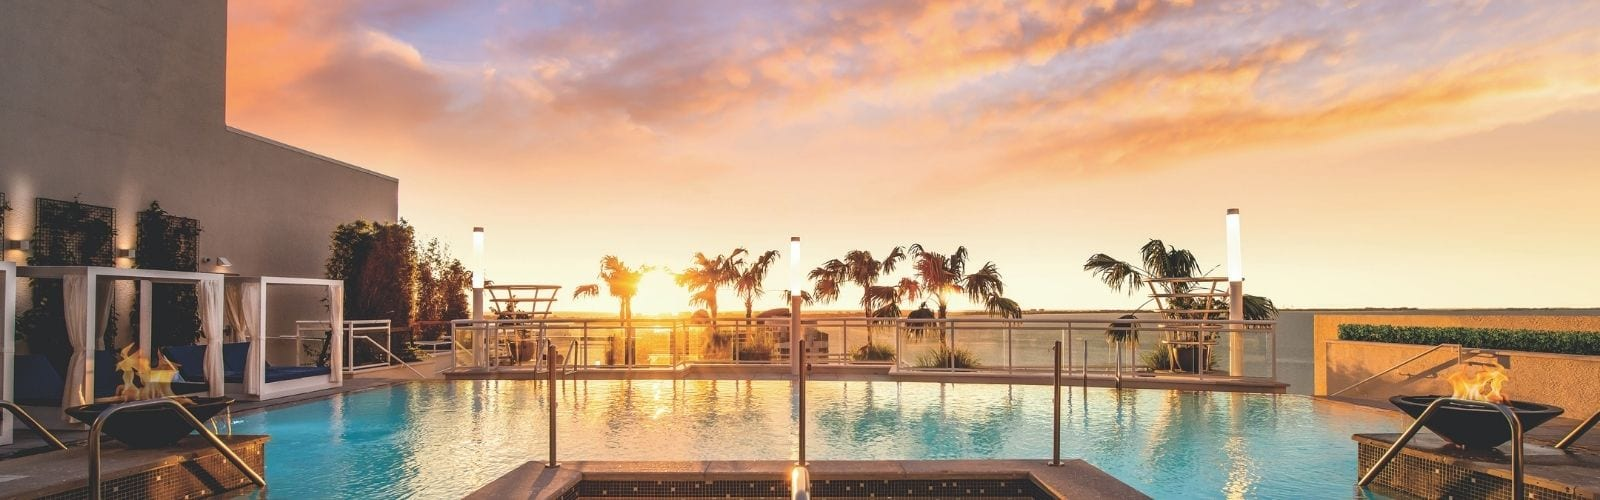 blvd rooftop pool at sunset